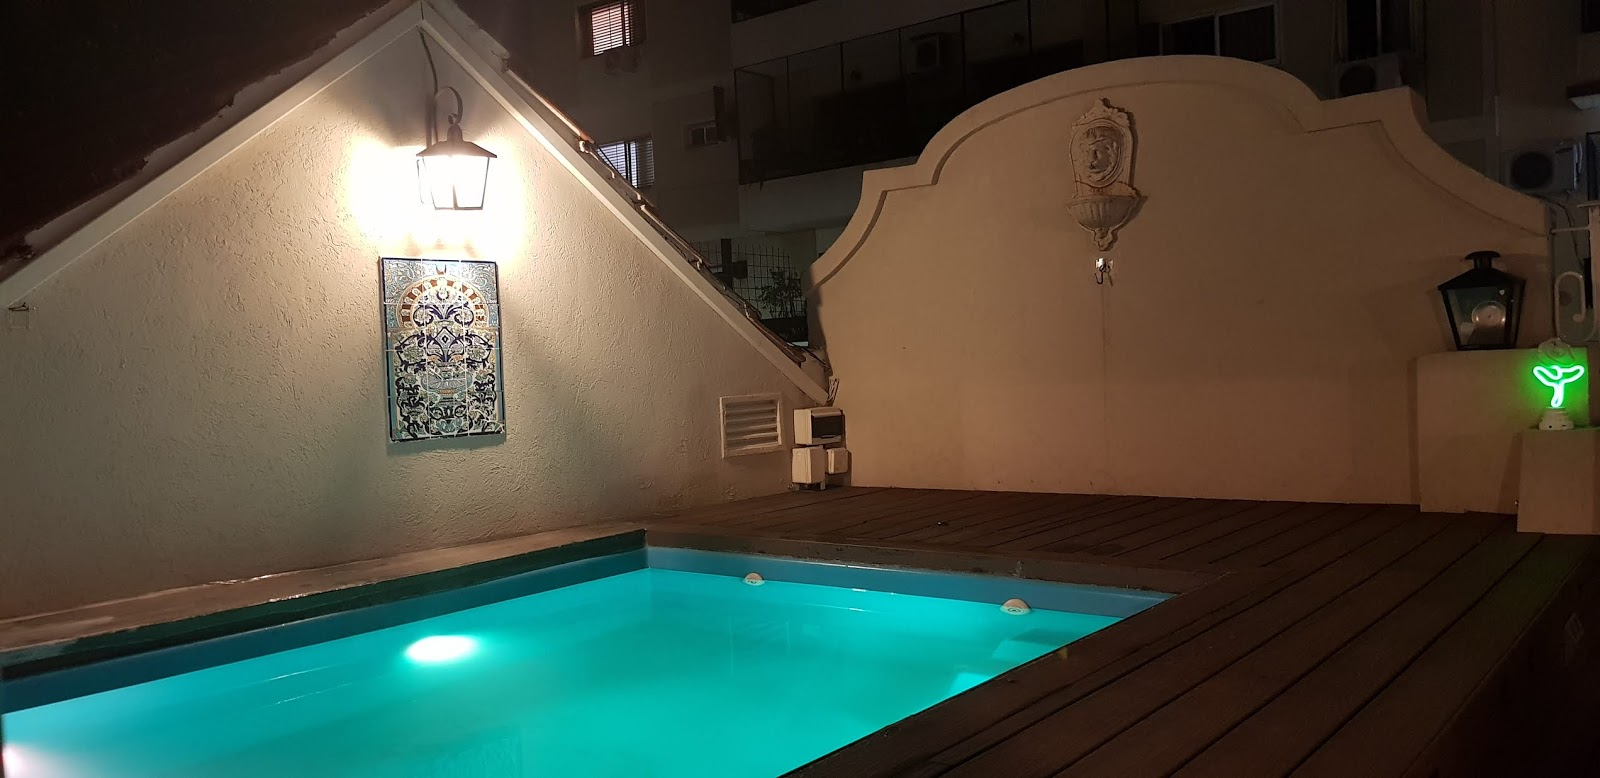 leds in rooftop pool